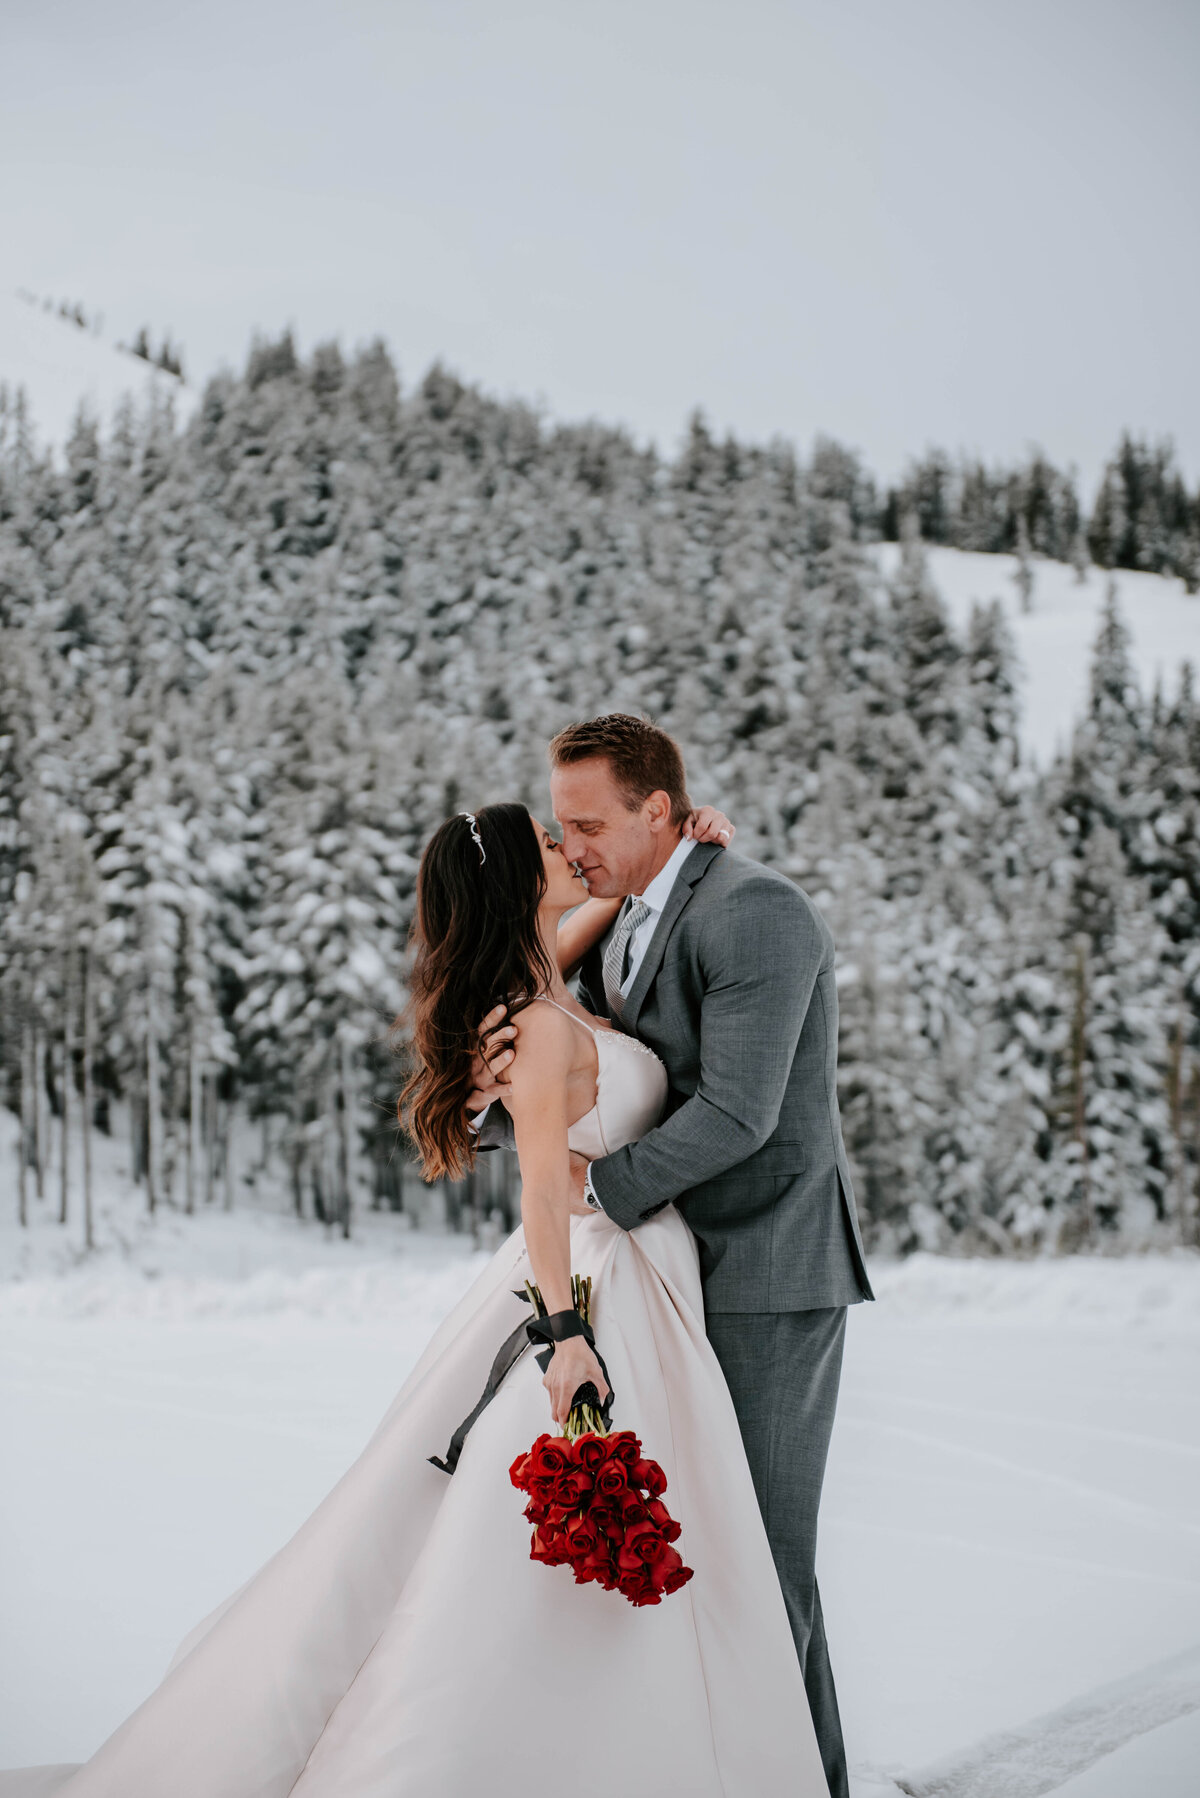 mt-bachelor-snow-winter-elopement-bend-oregon-wedding-photographer-2038